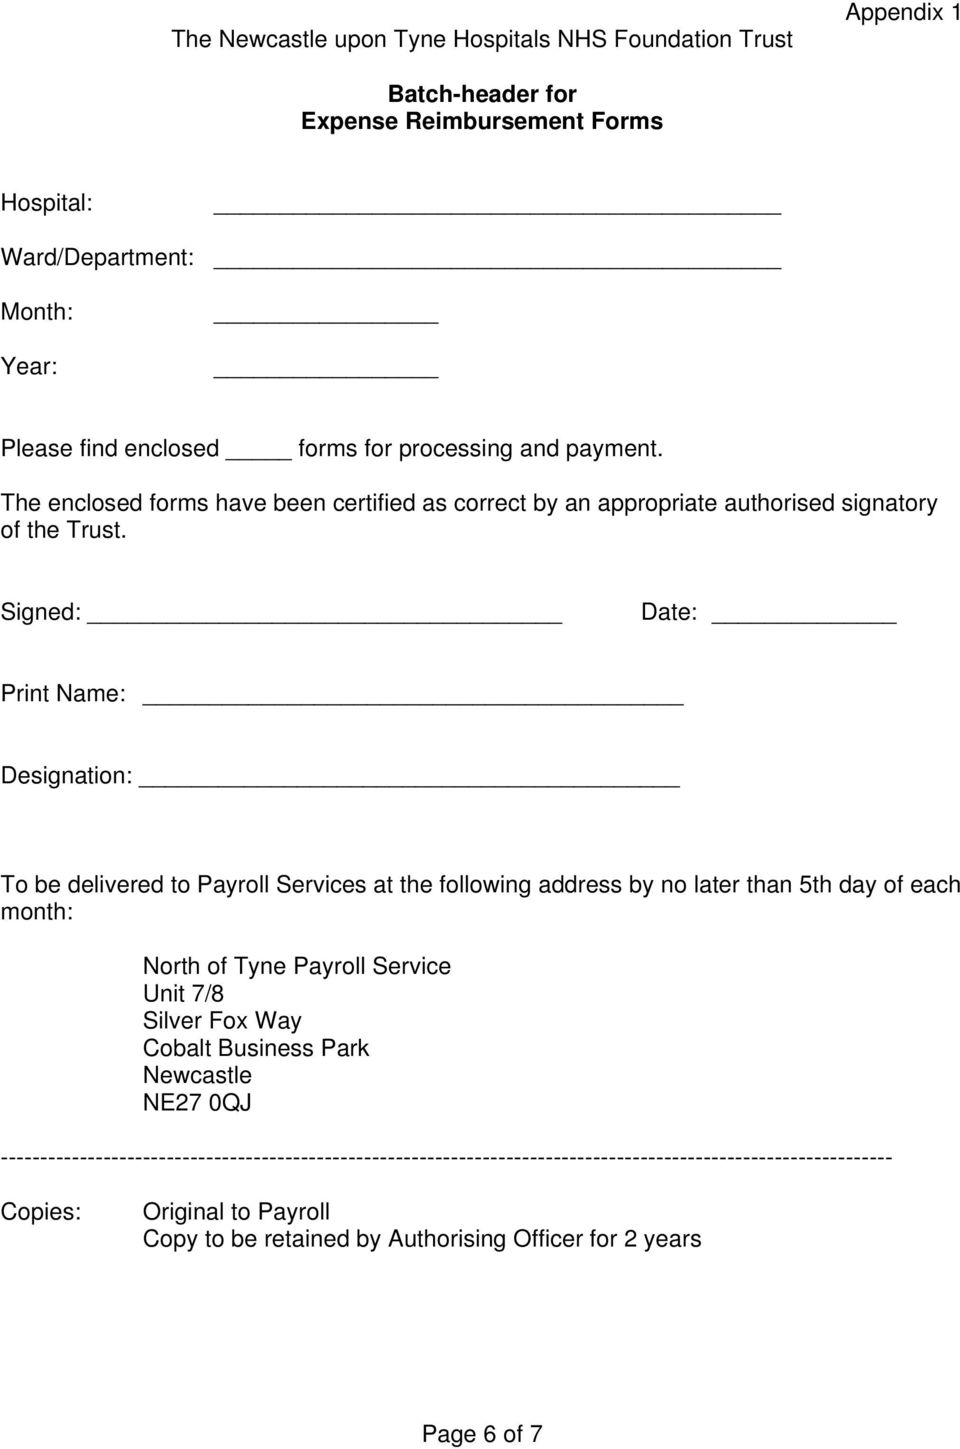 Signed: Date: Print Name: Designation: To be delivered to Payroll Services at the following address by no later than 5th day of each month: North of Tyne Payroll Service Unit 7/8 Silver